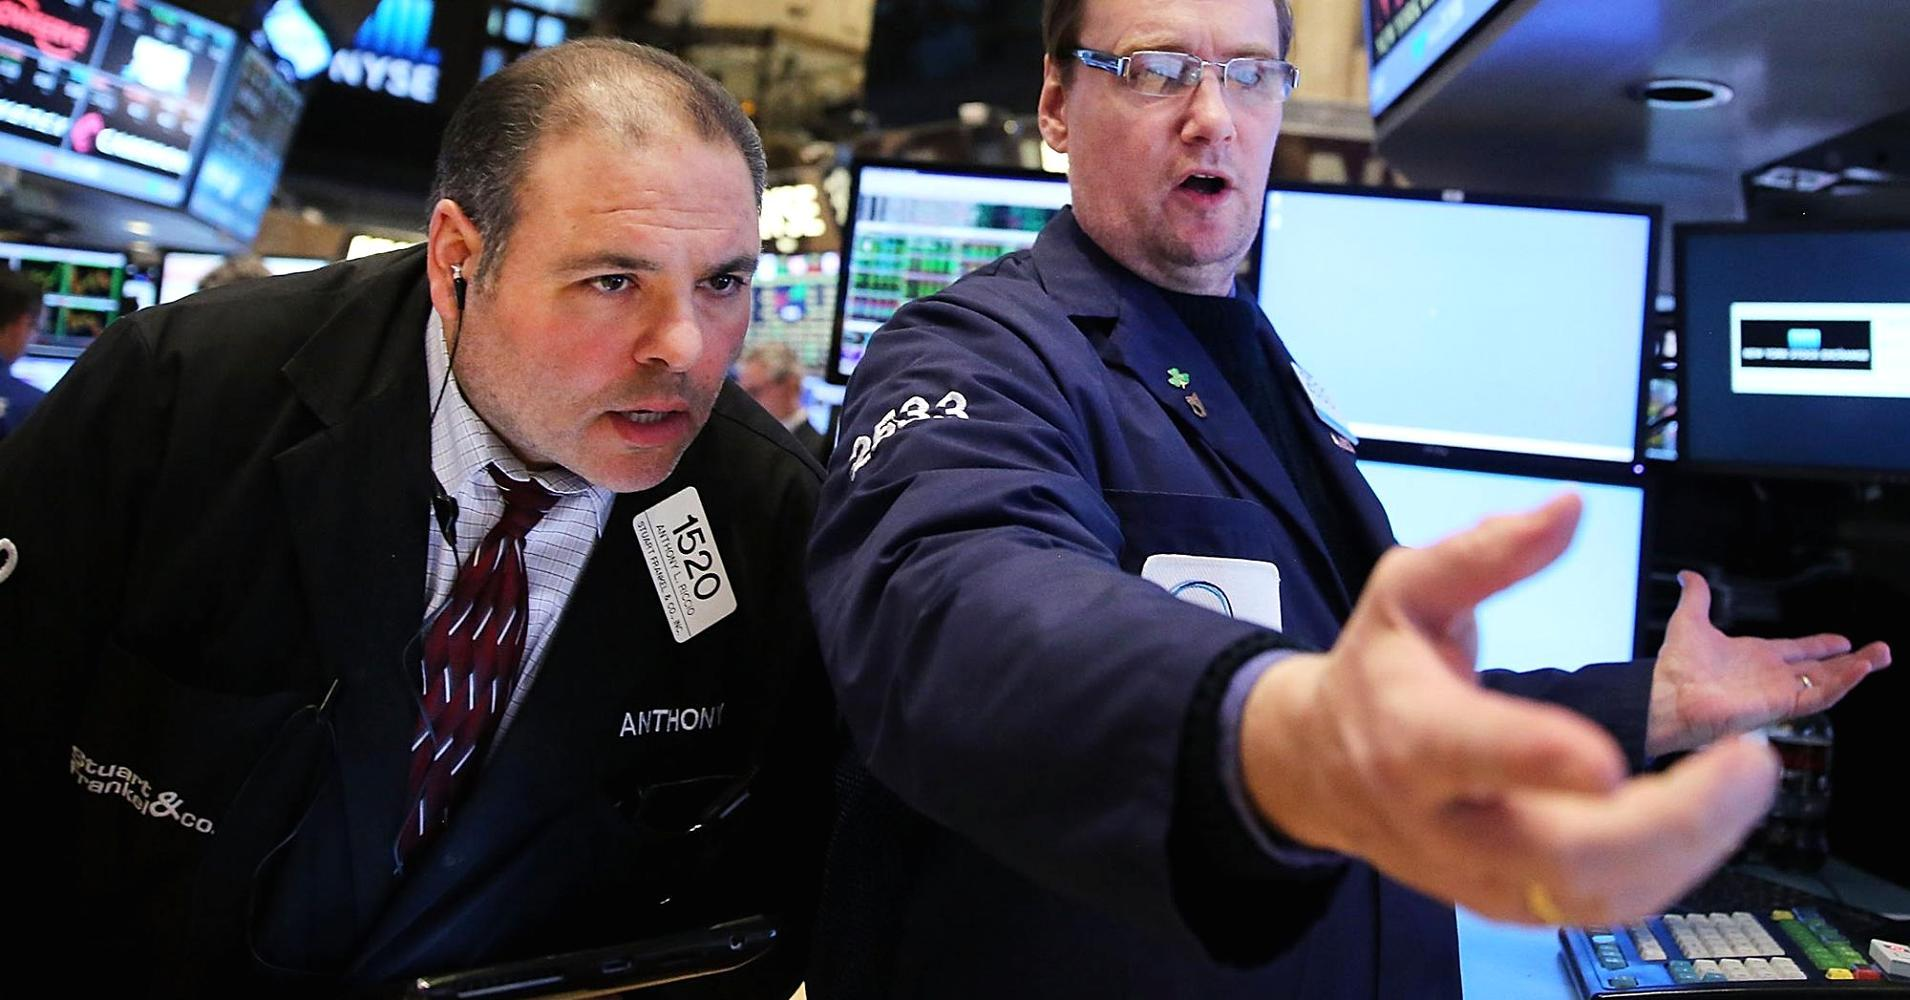 Dow futures up, the Street hopes for another rally